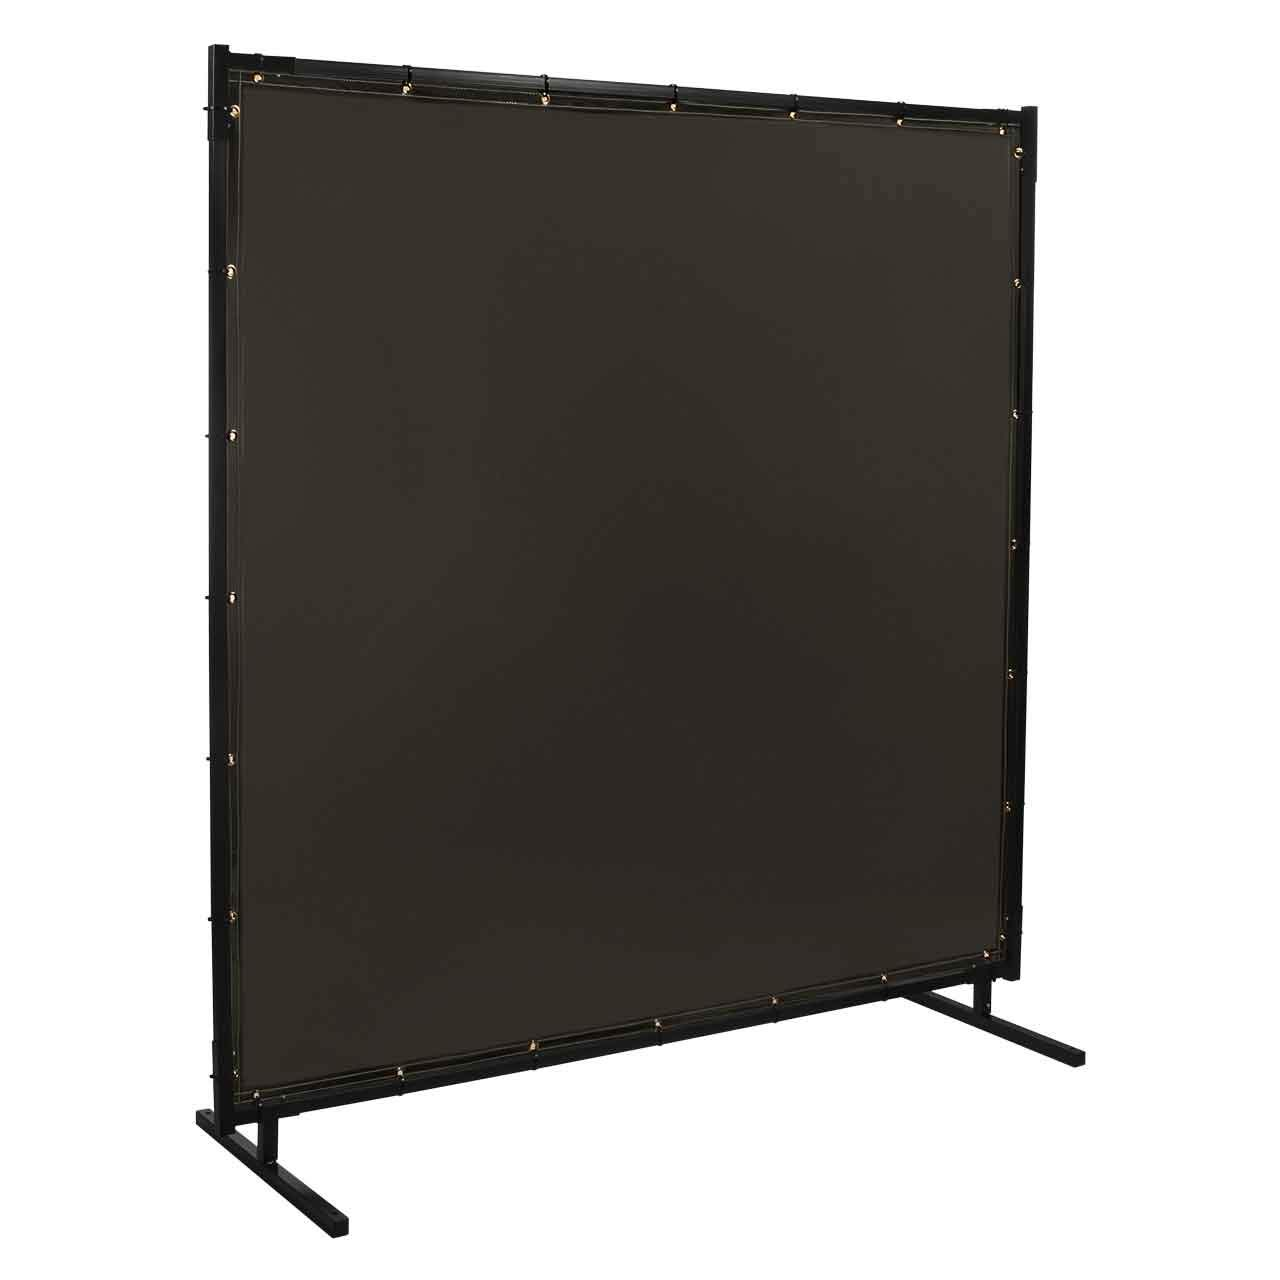 Steiner 532HD-6X8 Protect-O-Screen HD Welding Screen with Flame Retardant 14 Mil Tinted Transparent Vinyl Curtain, Gray, 6' x 8' by Steiner